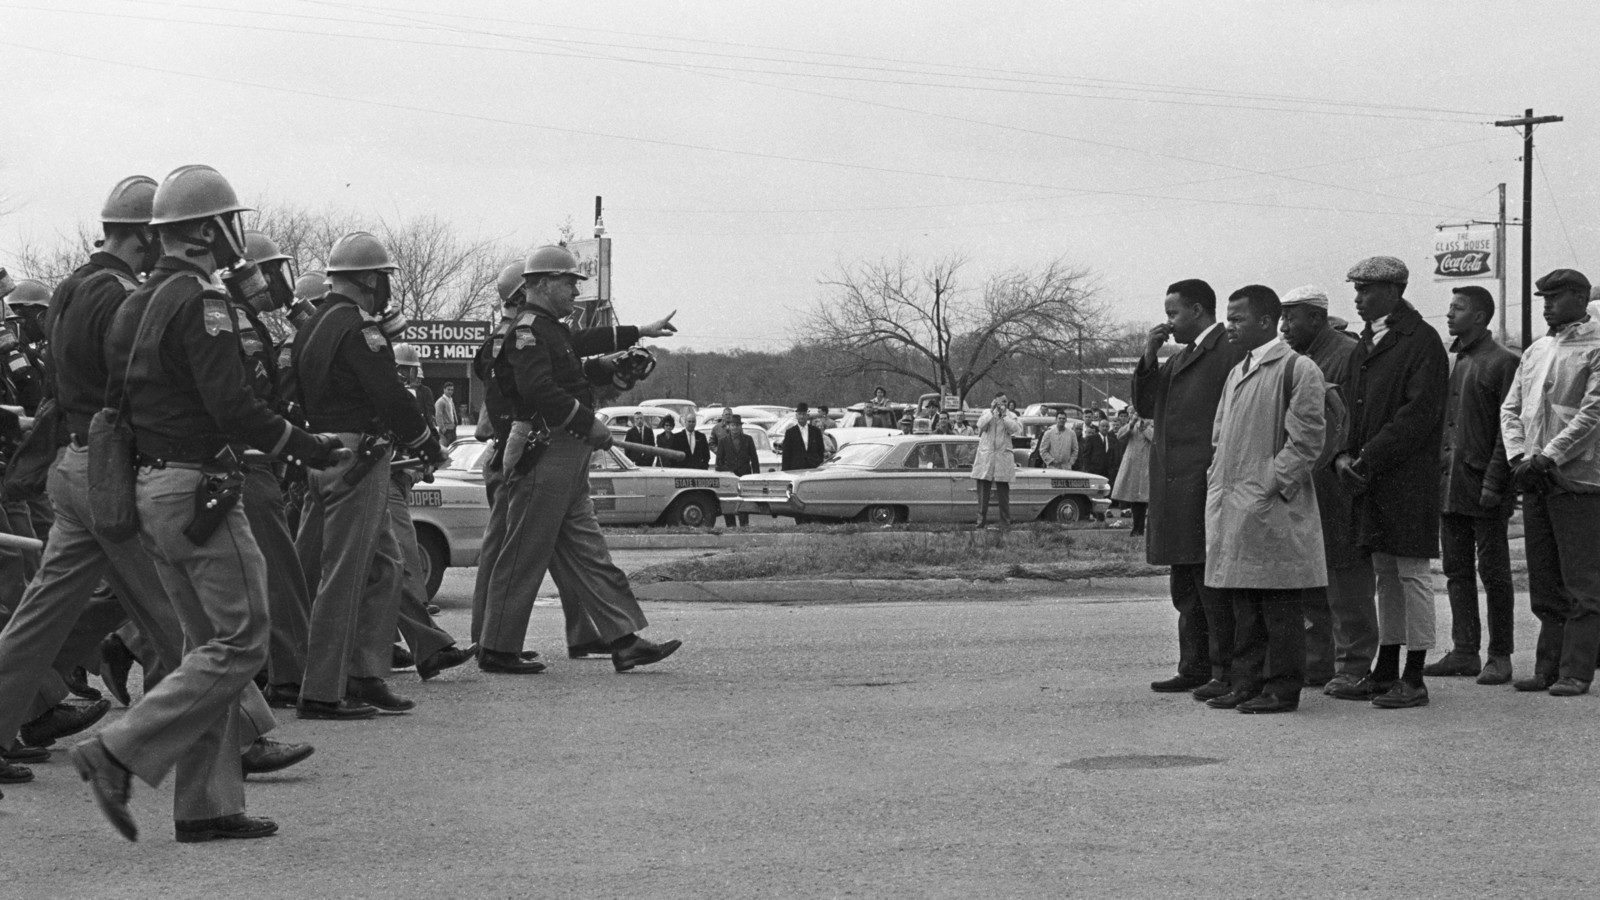 A still from ' I Am Not Your Negro ', 2016 documentary by Raoul Peck.